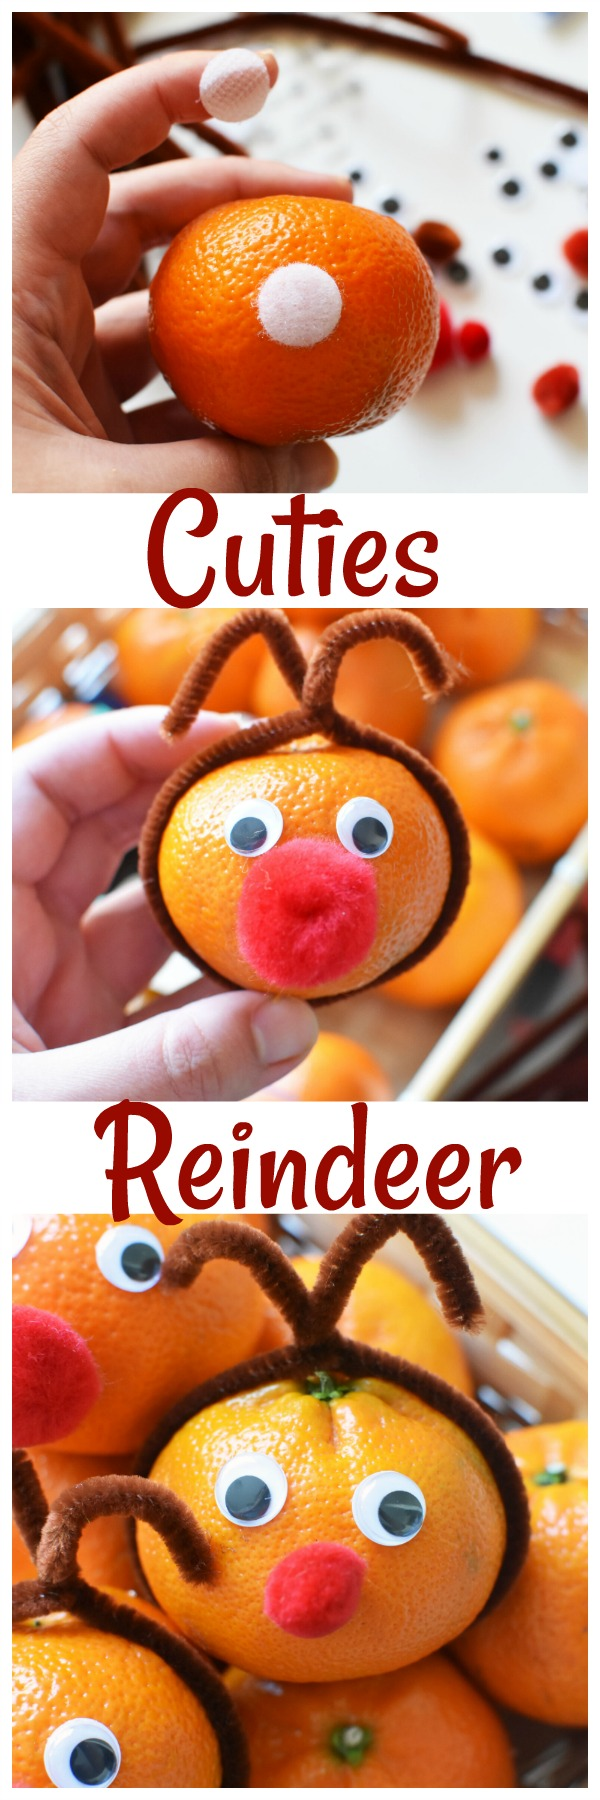 Reindeer Mandarin Oranges Craft +Brighten Someone's Day with Cuties. See how you can brighten someones day with Cuties. Plus, get what you need to make this adorable Cuties Reindeer Craft.